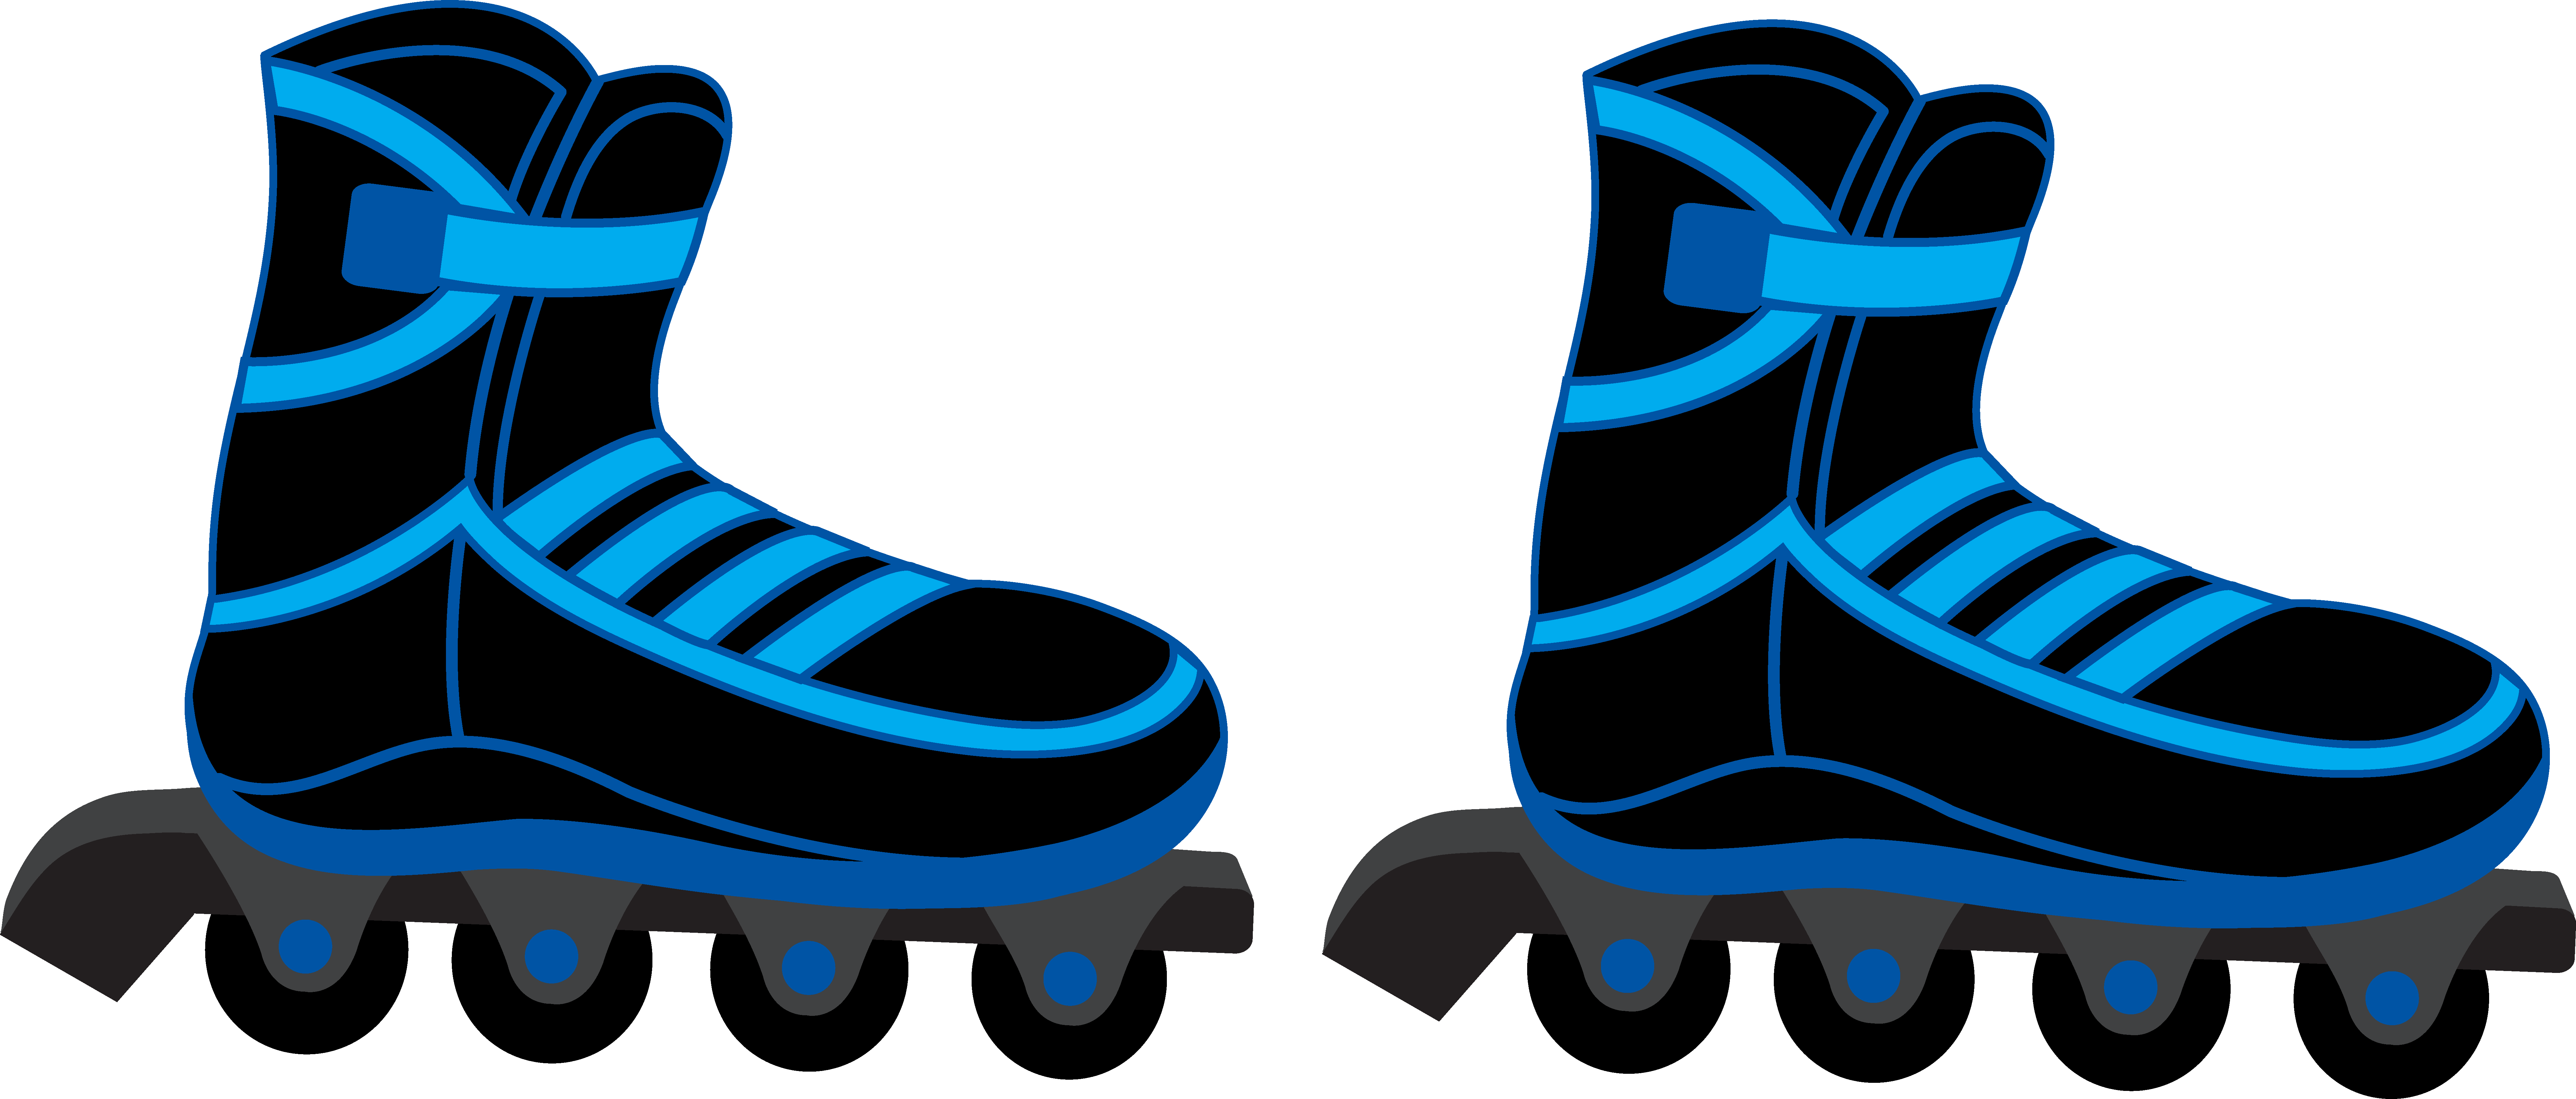 Cool Blue and Black Rollerblades - Free -Cool Blue and Black Rollerblades - Free Clip Art-11